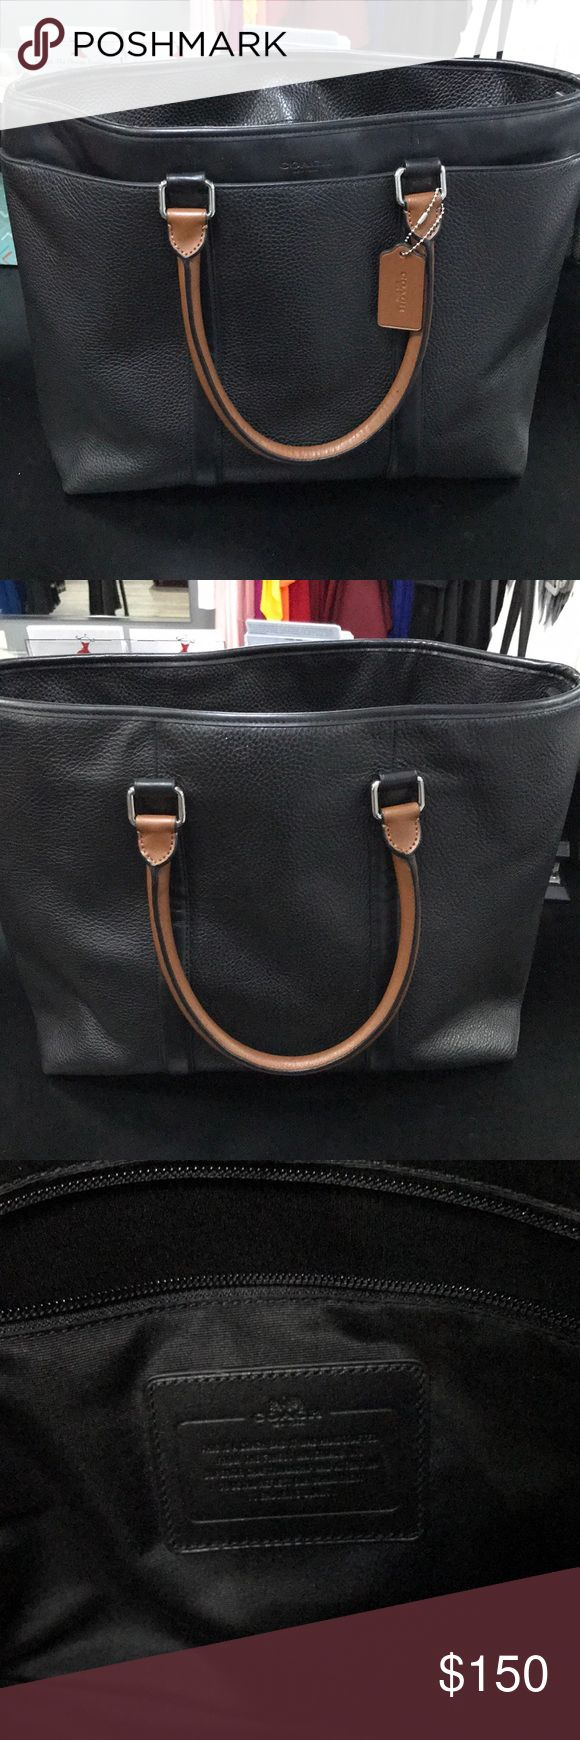 Coach tote bag Black gently used coach tote bag Coach Bags Laptop Bags